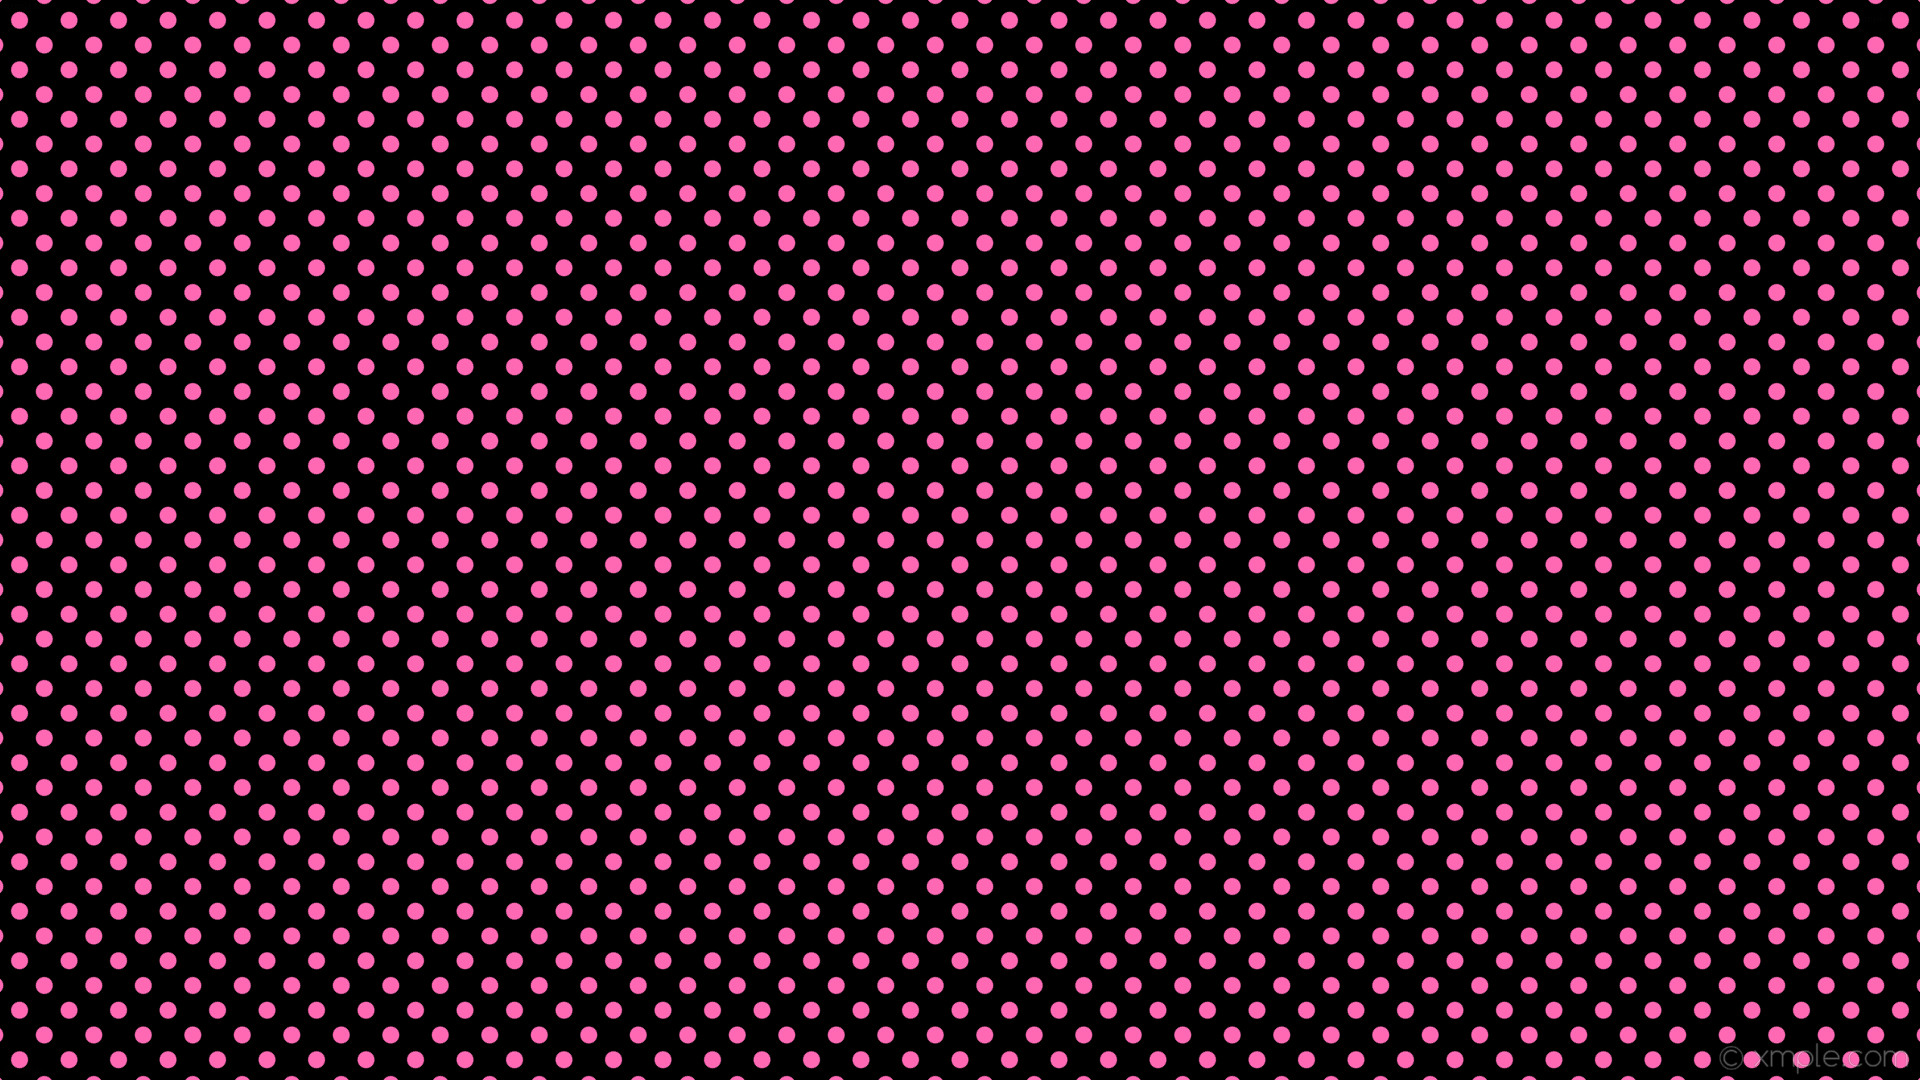 2560x1600 Light Pink And Black Wallpaper 24 Cool Hd